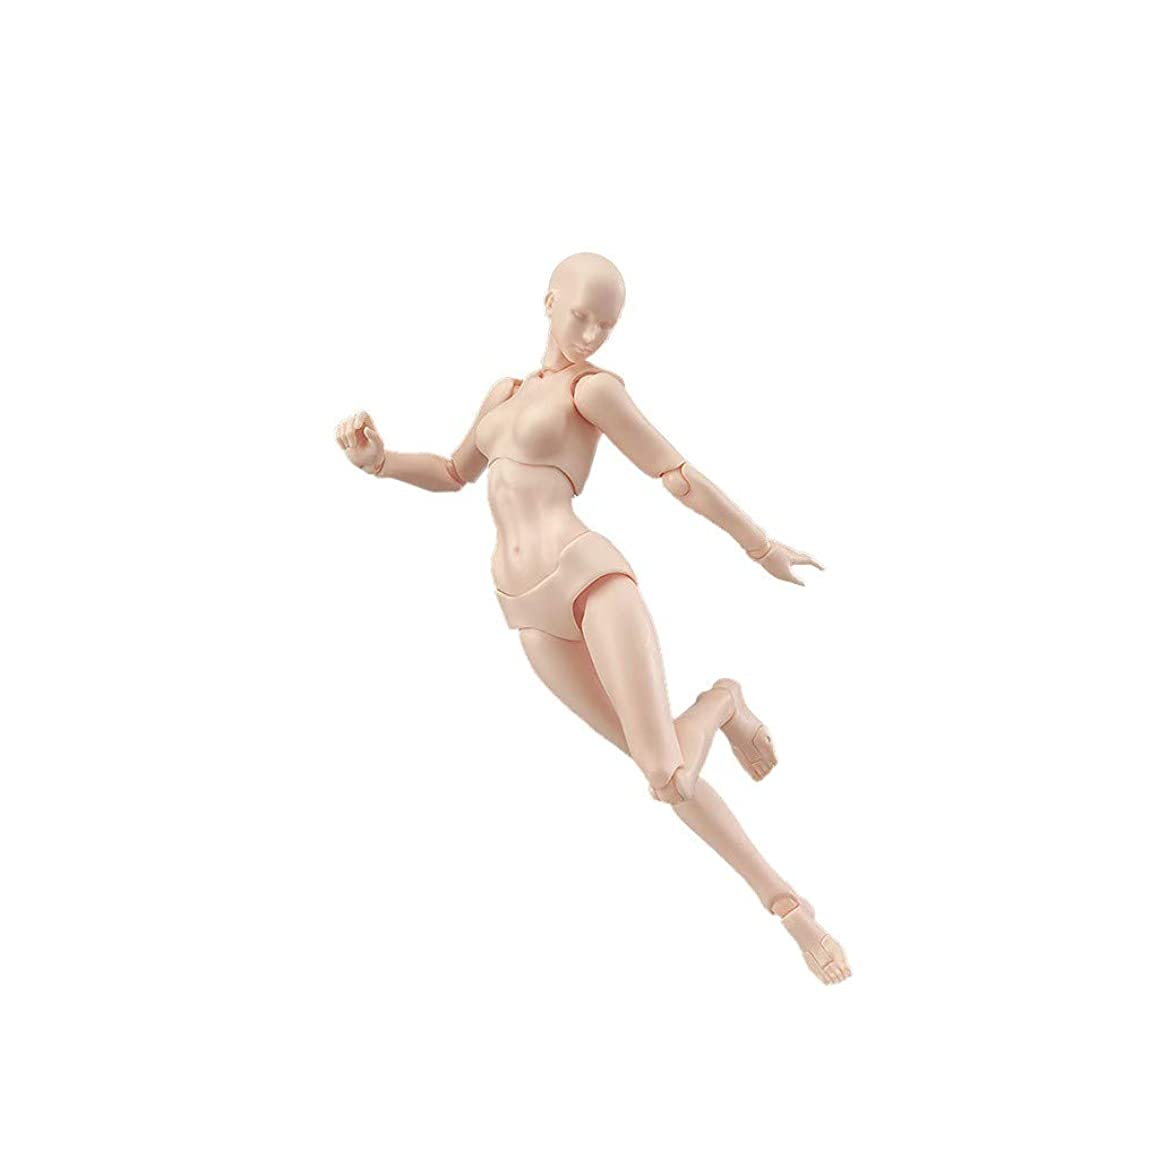 COLOR-LILIJ Drawing Model and Action Figures Body for Artists Action Figure Model Human Mannequin Man Woman Kits, Drawing, Painting, Sketching, Improve Drawing Skills (US Stock)